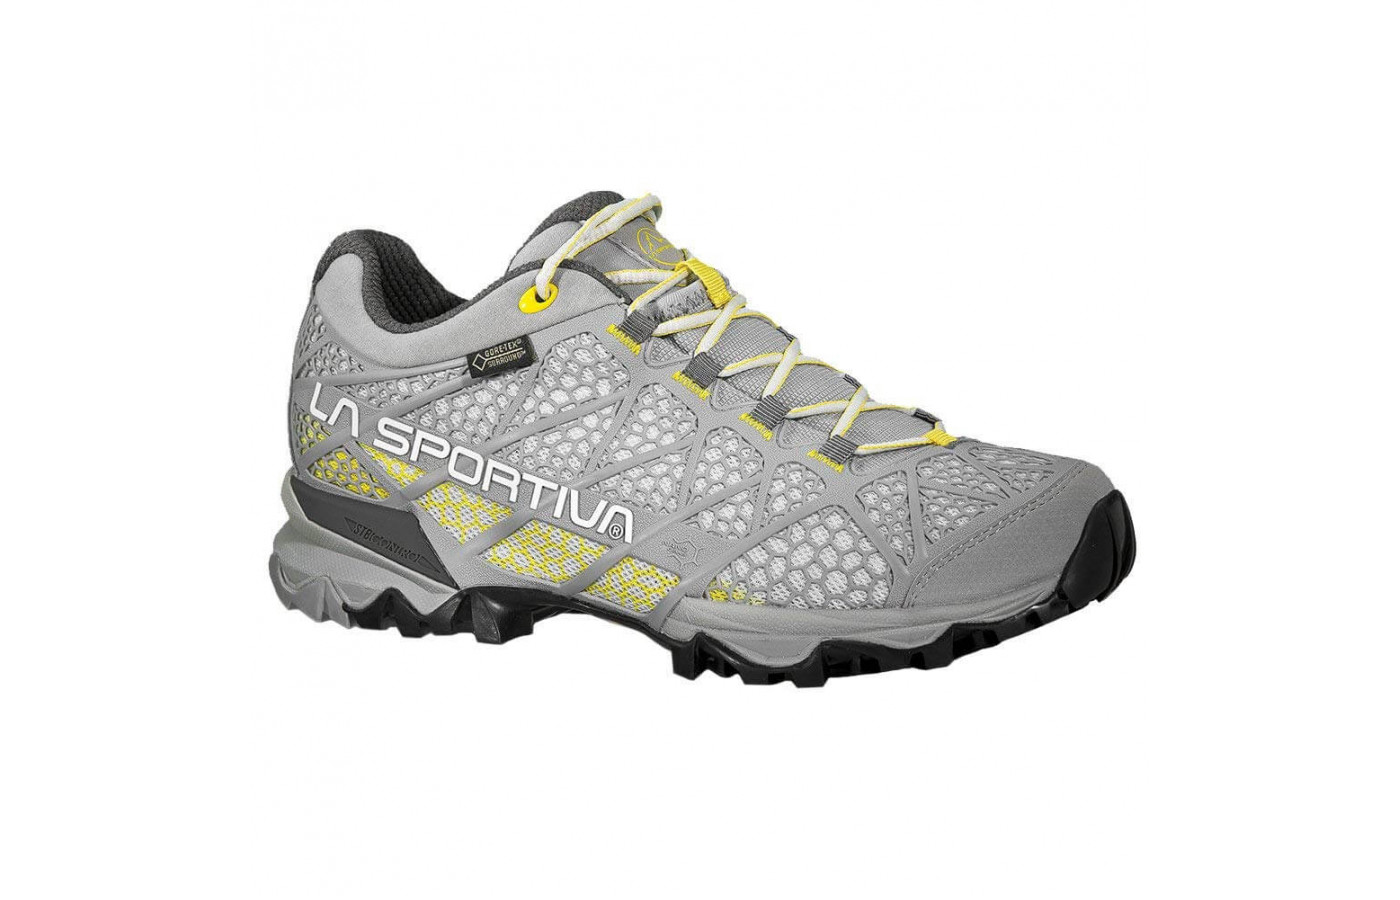 The Primer Low GTX features a breathable air mesh upper with Nano-cell technology